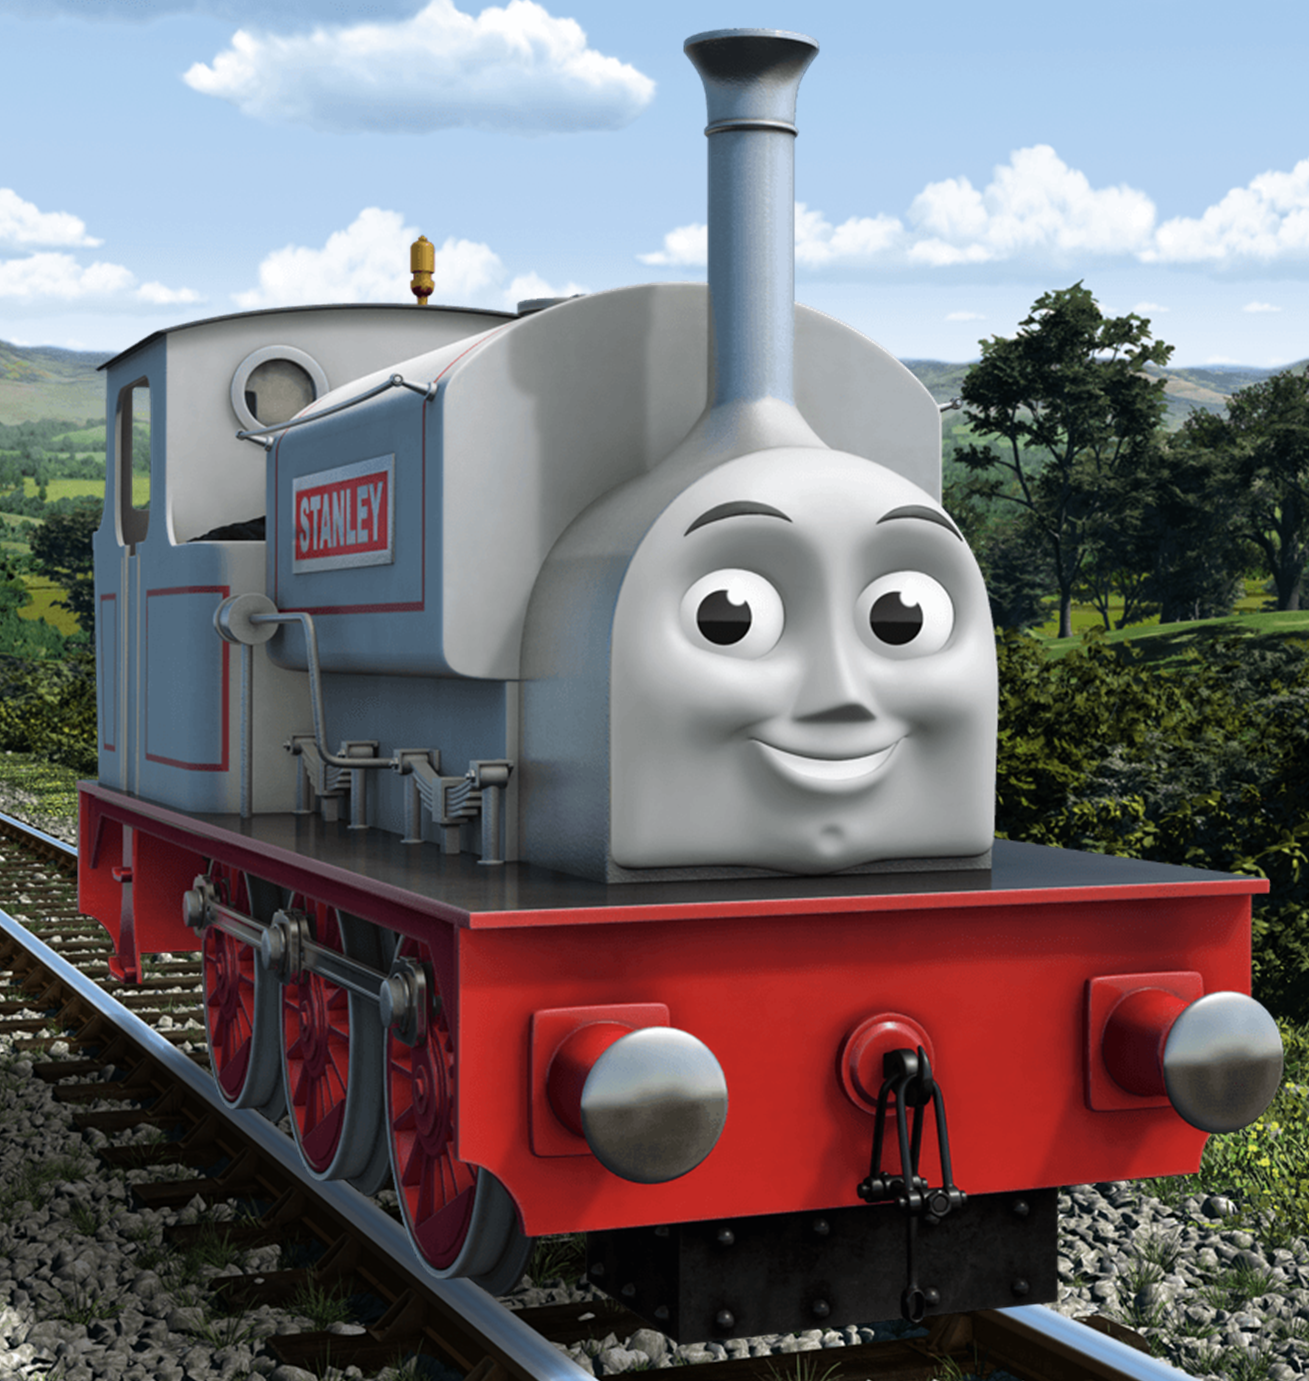 Image stanleycgipromo2g thomas friends cgi series wiki thumbnail for version as of 2213 february 22 2016 thecheapjerseys Images